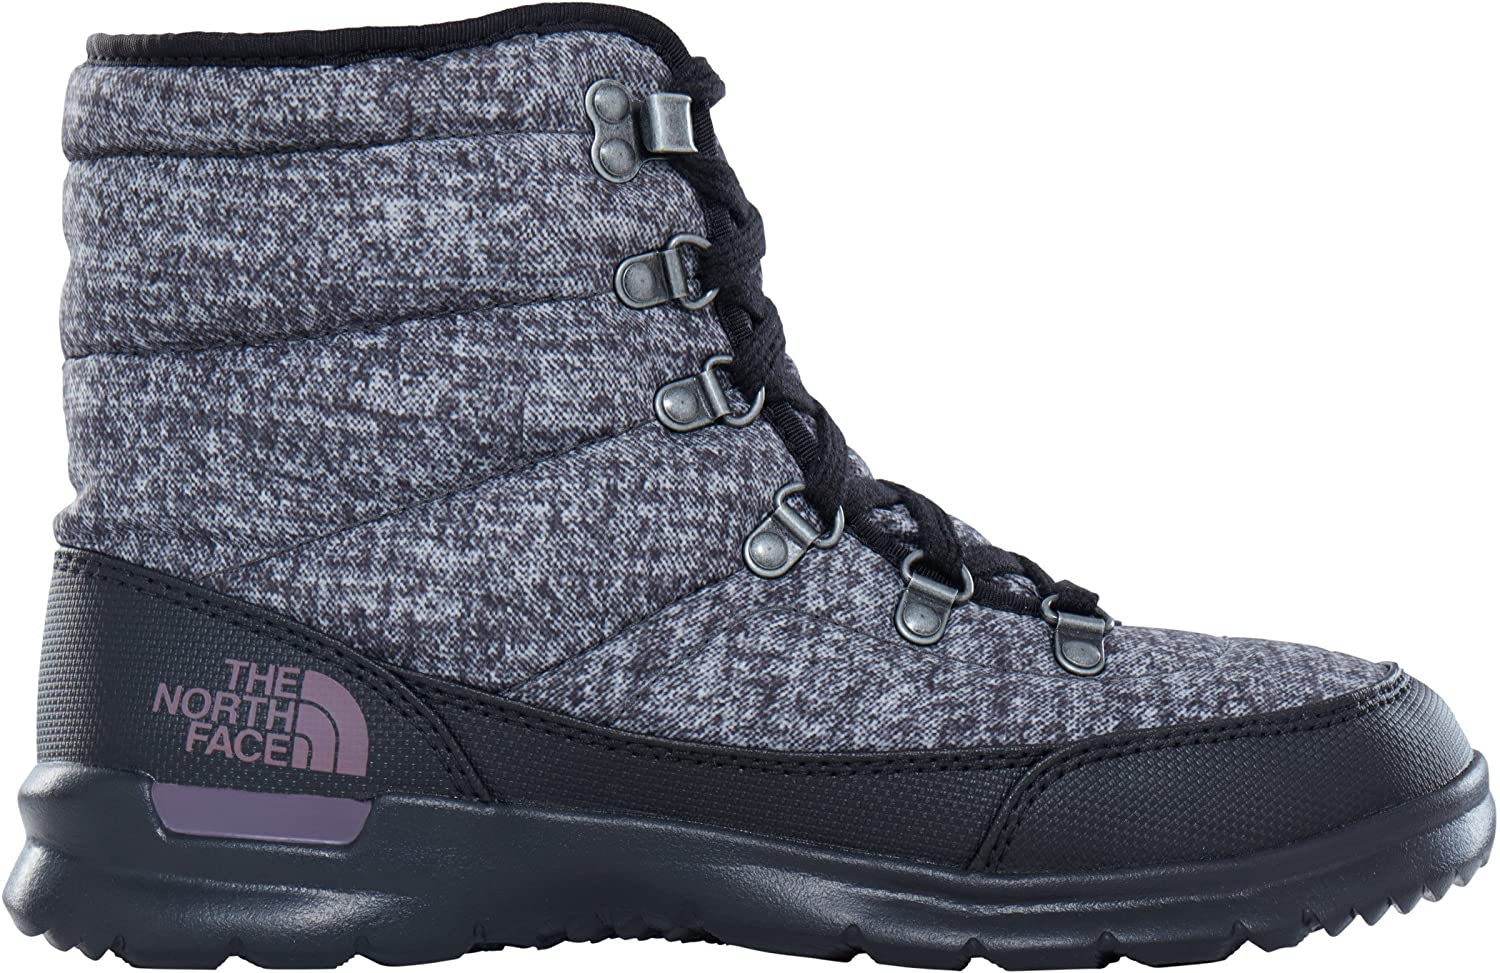 The North Face Womens Thermoball Lace II B01N2VP43U 8 B(M) US|Burnished Houndstooth Print/Black Plum (Past Season)